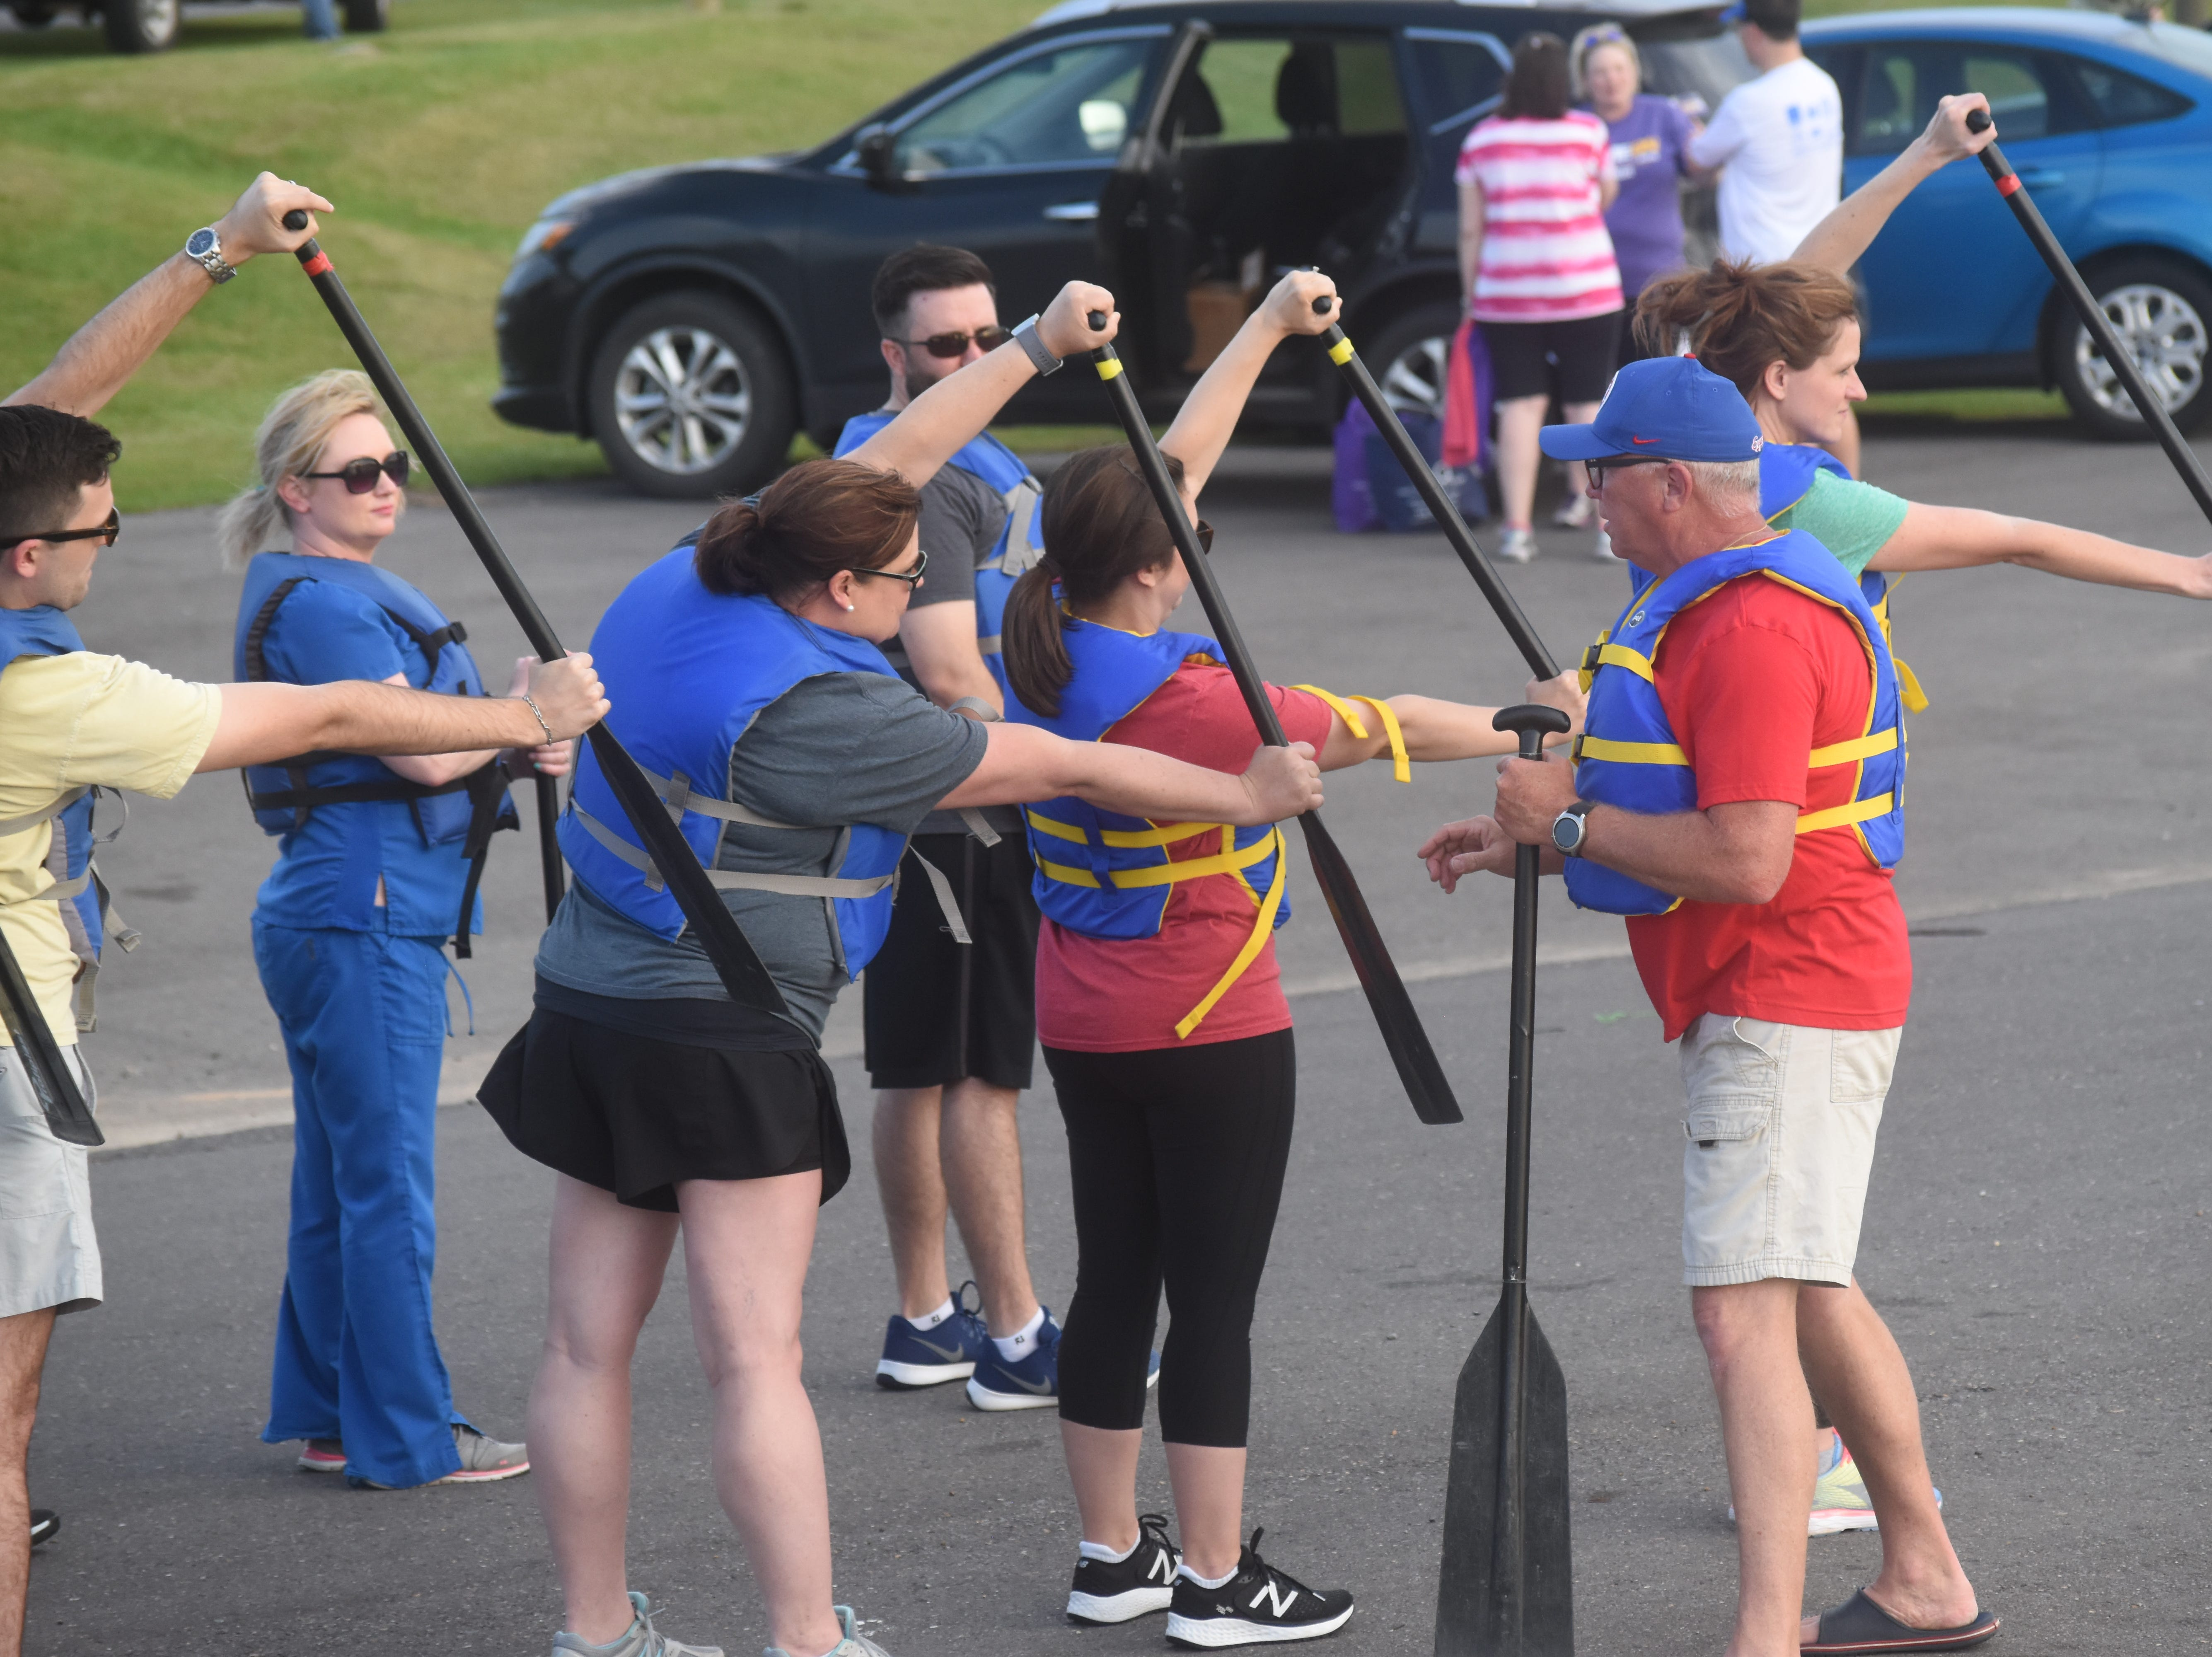 Dragon boat practices are being held this week at Lake Buhlow in Pineville in preparation for Saturday's 2019 Louisiana Dragon Boat Races. Nineteen local teams will be competing in the event that is a fundraiser for the Alexandria Museum of Art. This is the ninth year for the event. On Wednesday, eight teams practiced for Saturday's main event. The teams included Louisiana State University of Alexandria staff and faculty; Central Louisiana Technical & Community College; Boise Cascade; Cleco; Christus St. Frances Cabrini Hospital; Procter & Gamble Team 2; Rapides Regional Medical Center and Alexandria Country Day School. Emmanuel Baptist Church won the races in 2018. The event at Buhlow begins at 9 a.m. and is free for spectators.